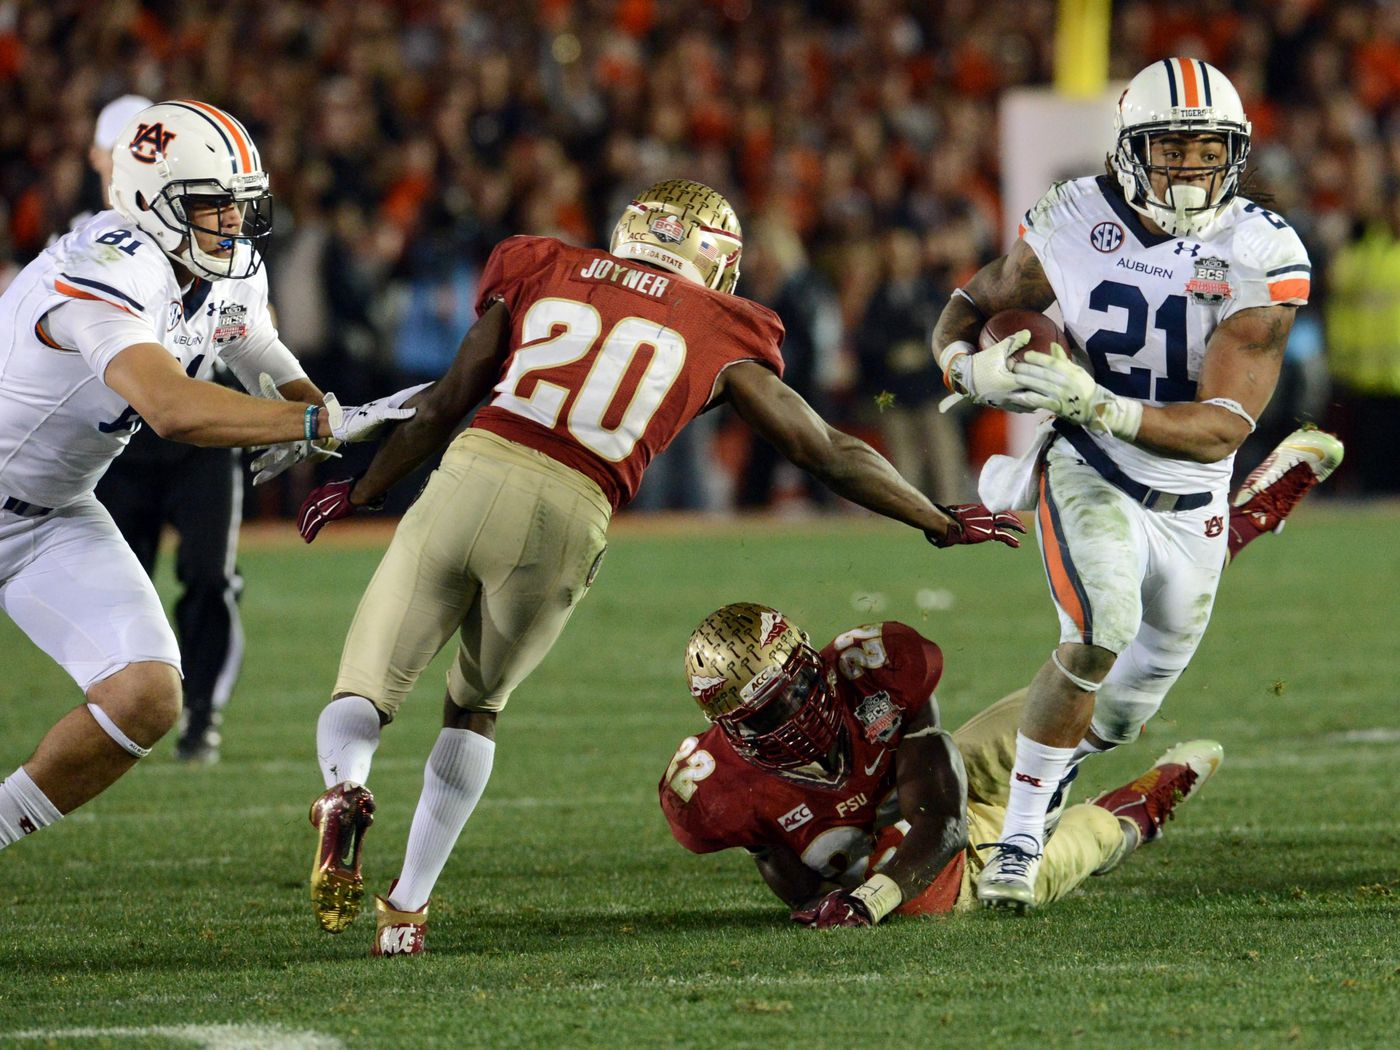 2014 NFL Draft Prospect Profile Tre Mason RB Auburn Big Blue View